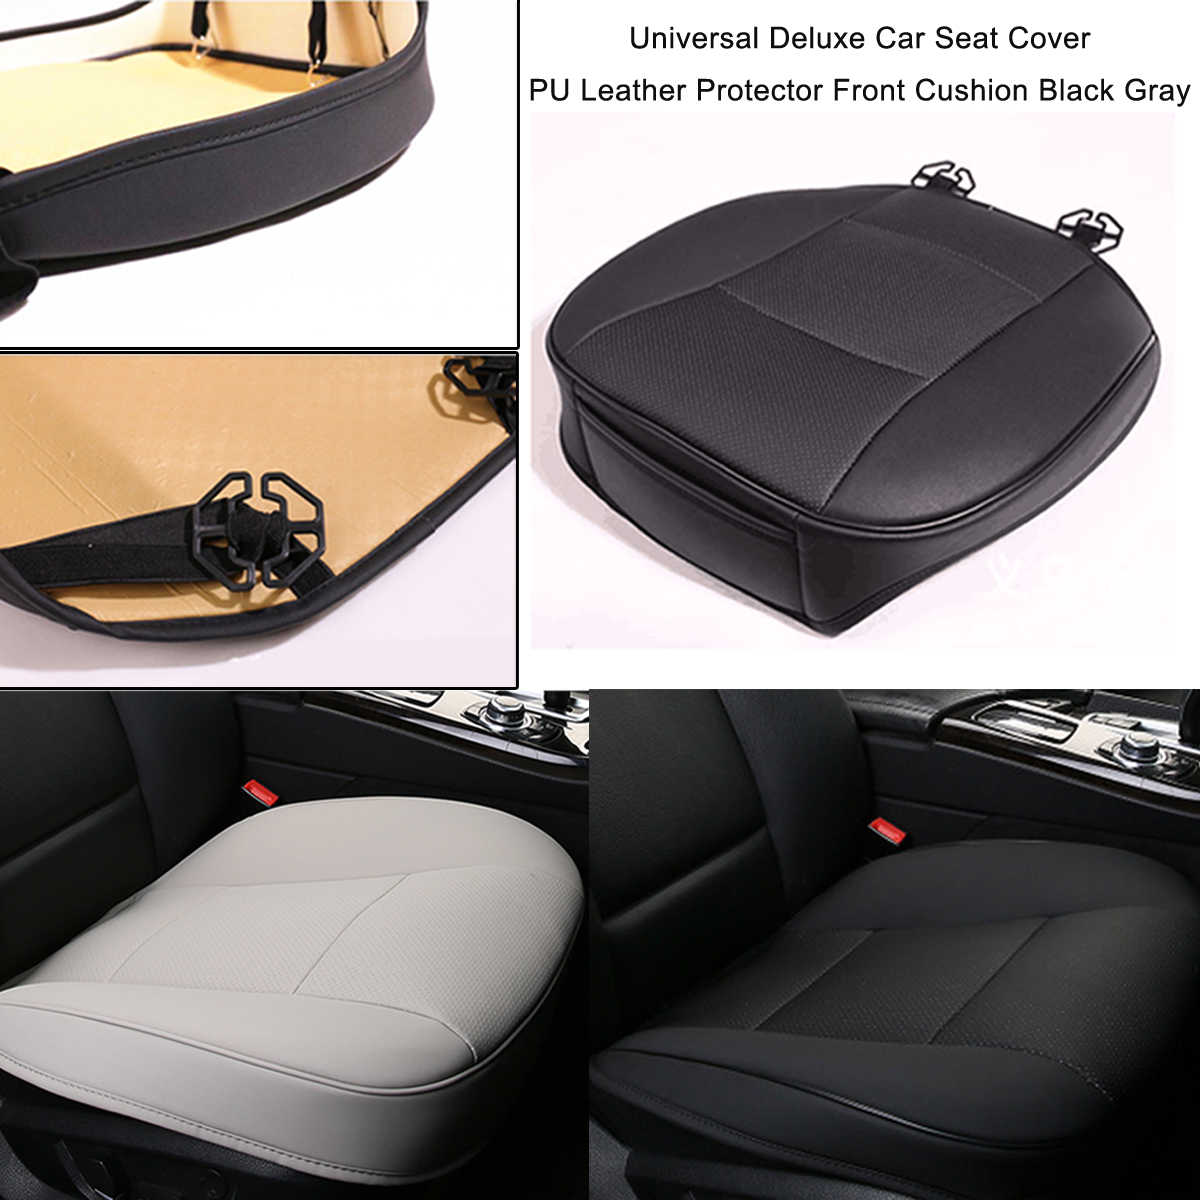 Universal Car Front Seat Soft Cover Pad Pu Leather Mat Chair Cushion Black Gray For Toyota Bmw Nissan Honda Vw Automobiles Seat Covers Aliexpress